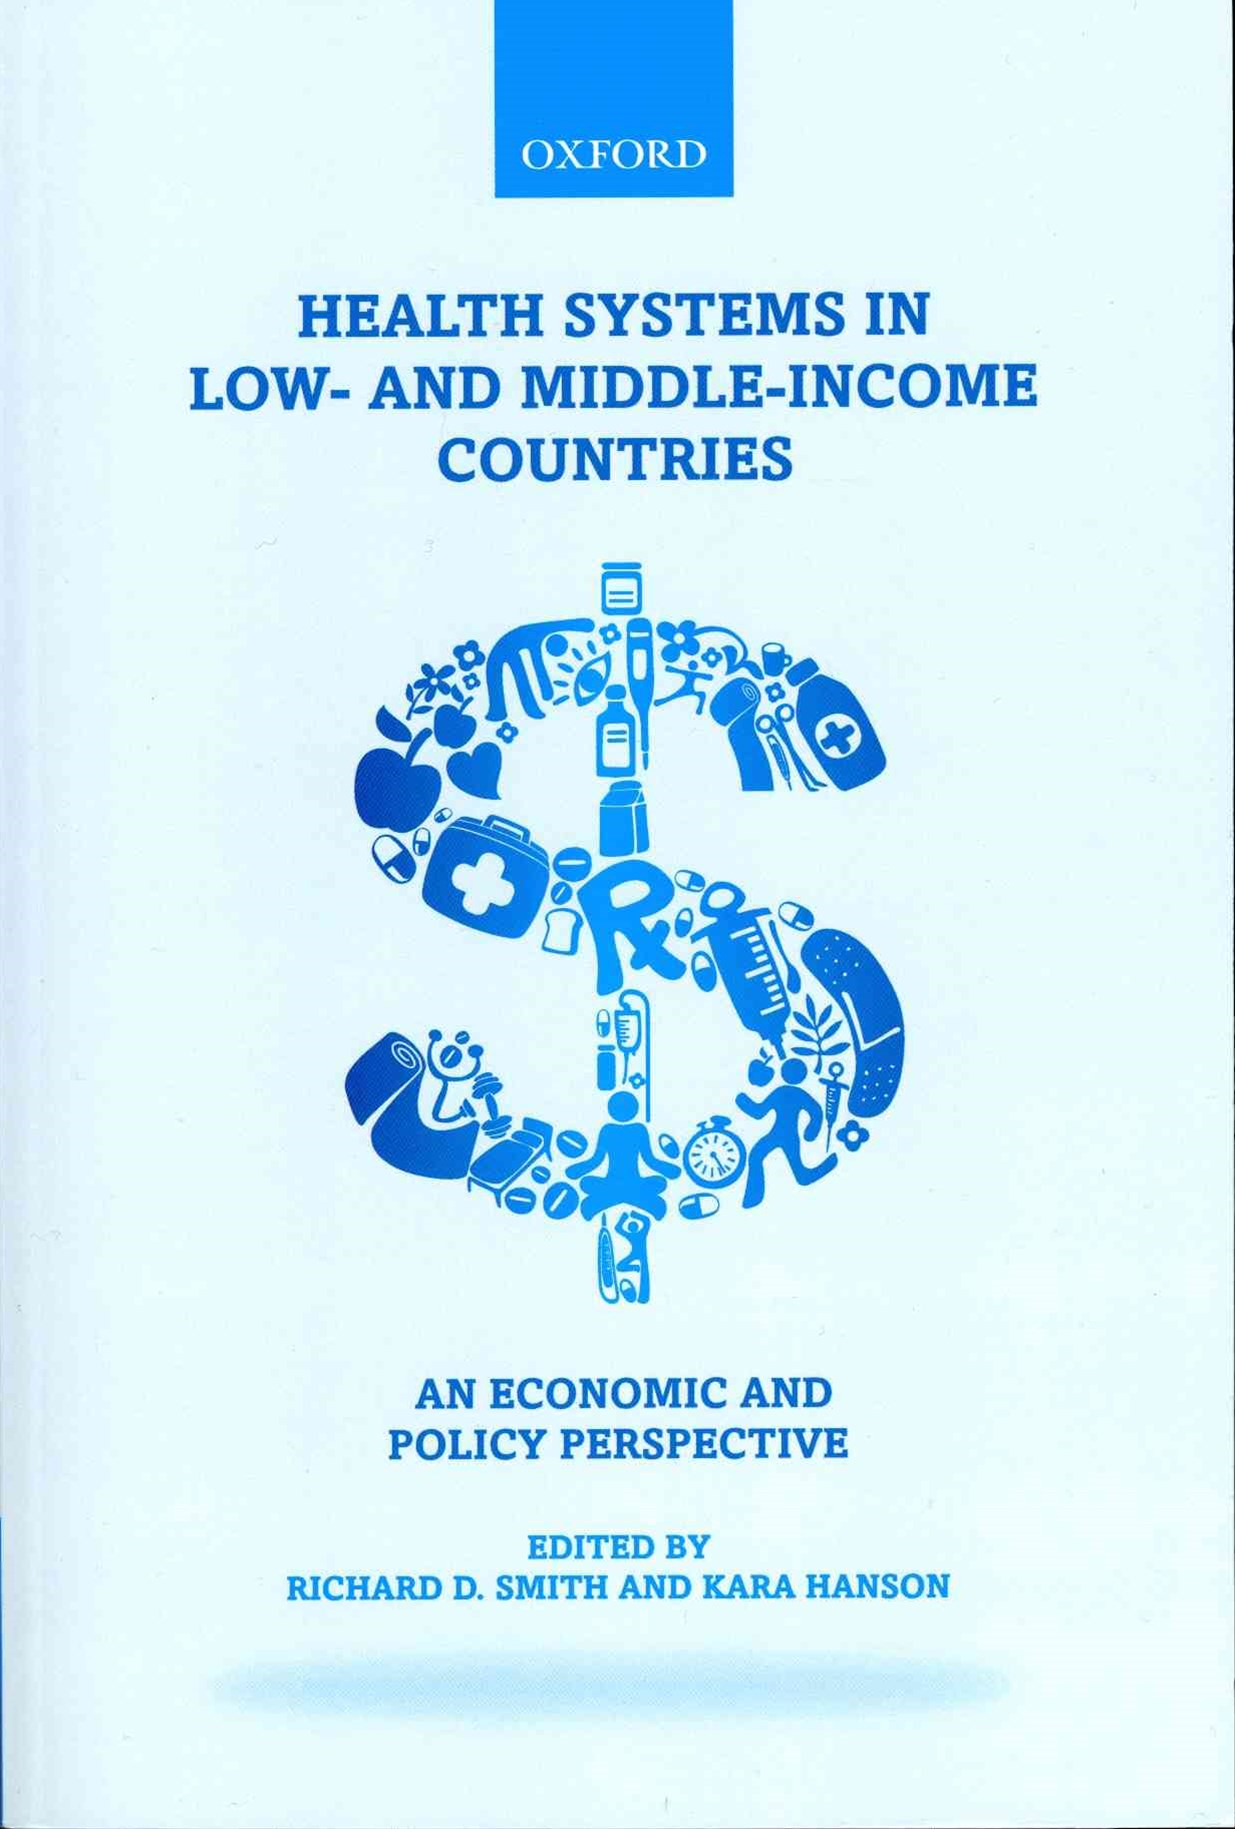 Health Systems in Low- and Middle-Income Countries